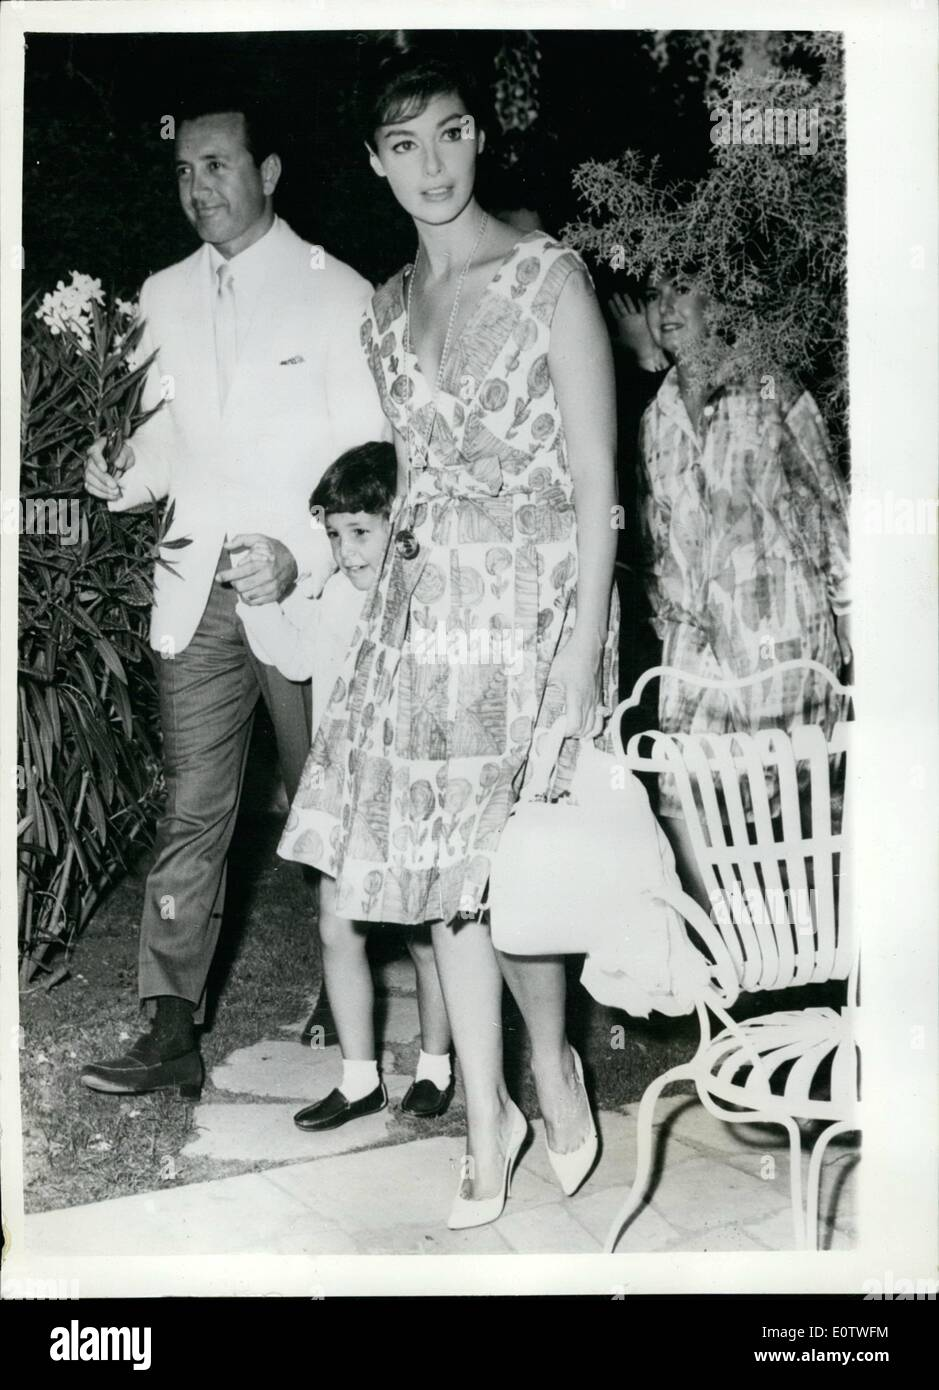 Aug. 08, 1960 - Vic Damone and Pier Angeli together once again reconciliation in the offing?.: Anna Maria Pier Angeli and hex ex-husband Vic Damone were to be seen together at a Rome Hotel yesterday - with their four year old son Perry. Anna had booked a suite at the hotel for Vic - who arrived form the United States - to take part in a new M.G.M. film. fiends of the couple believe that the chief reason for his visit to Rome - was for the purpose of a reconciliation with his lovely wife and their son - Stock Image